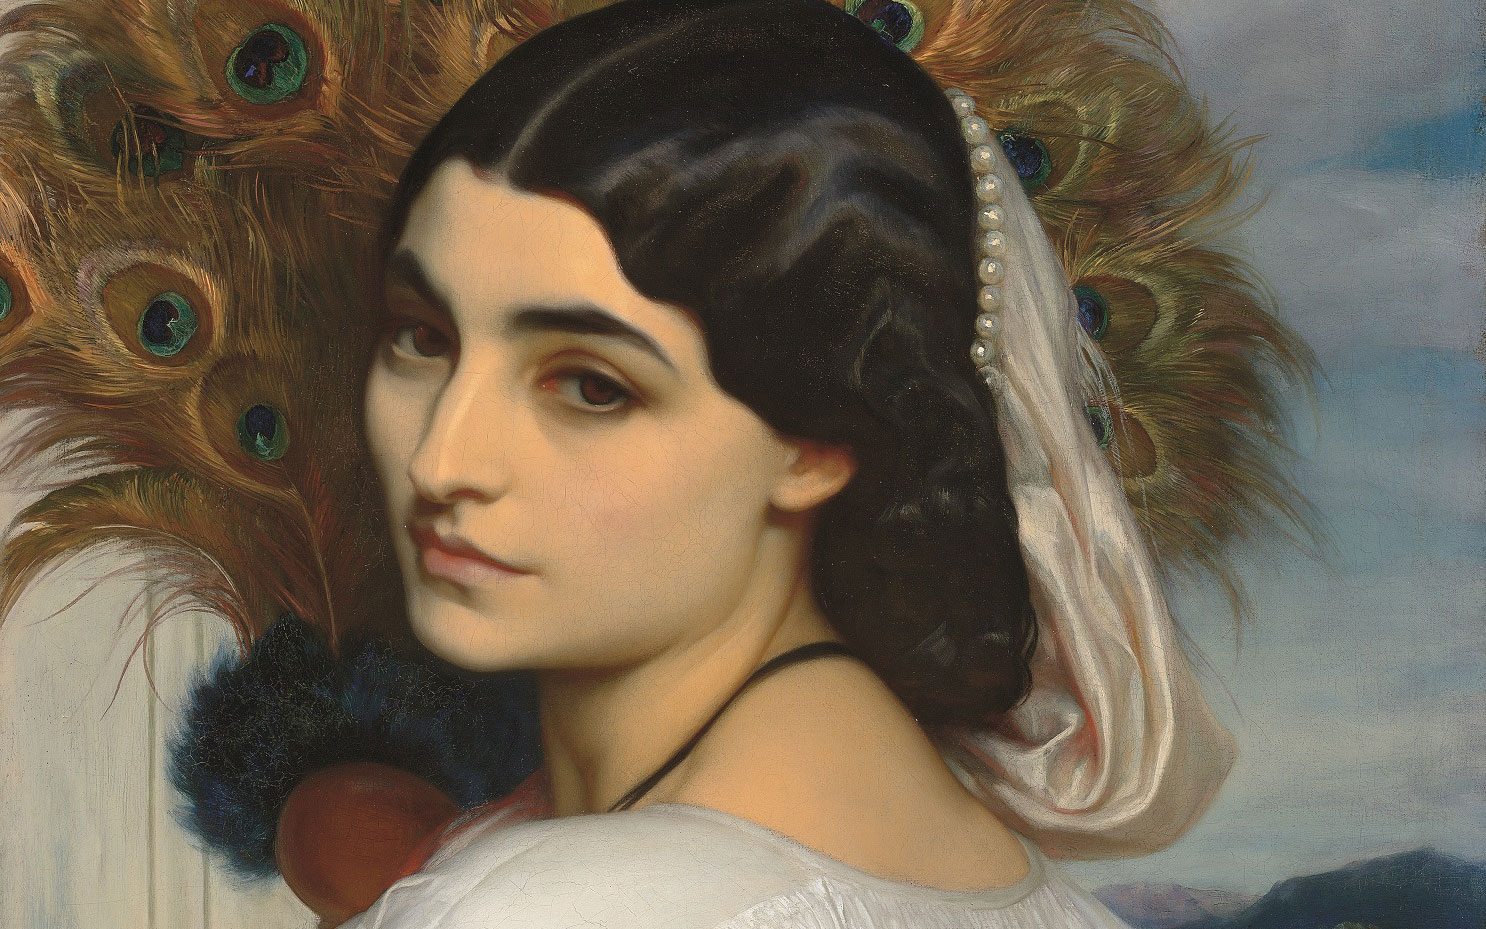 100 years of English beauty defined by four artist muses